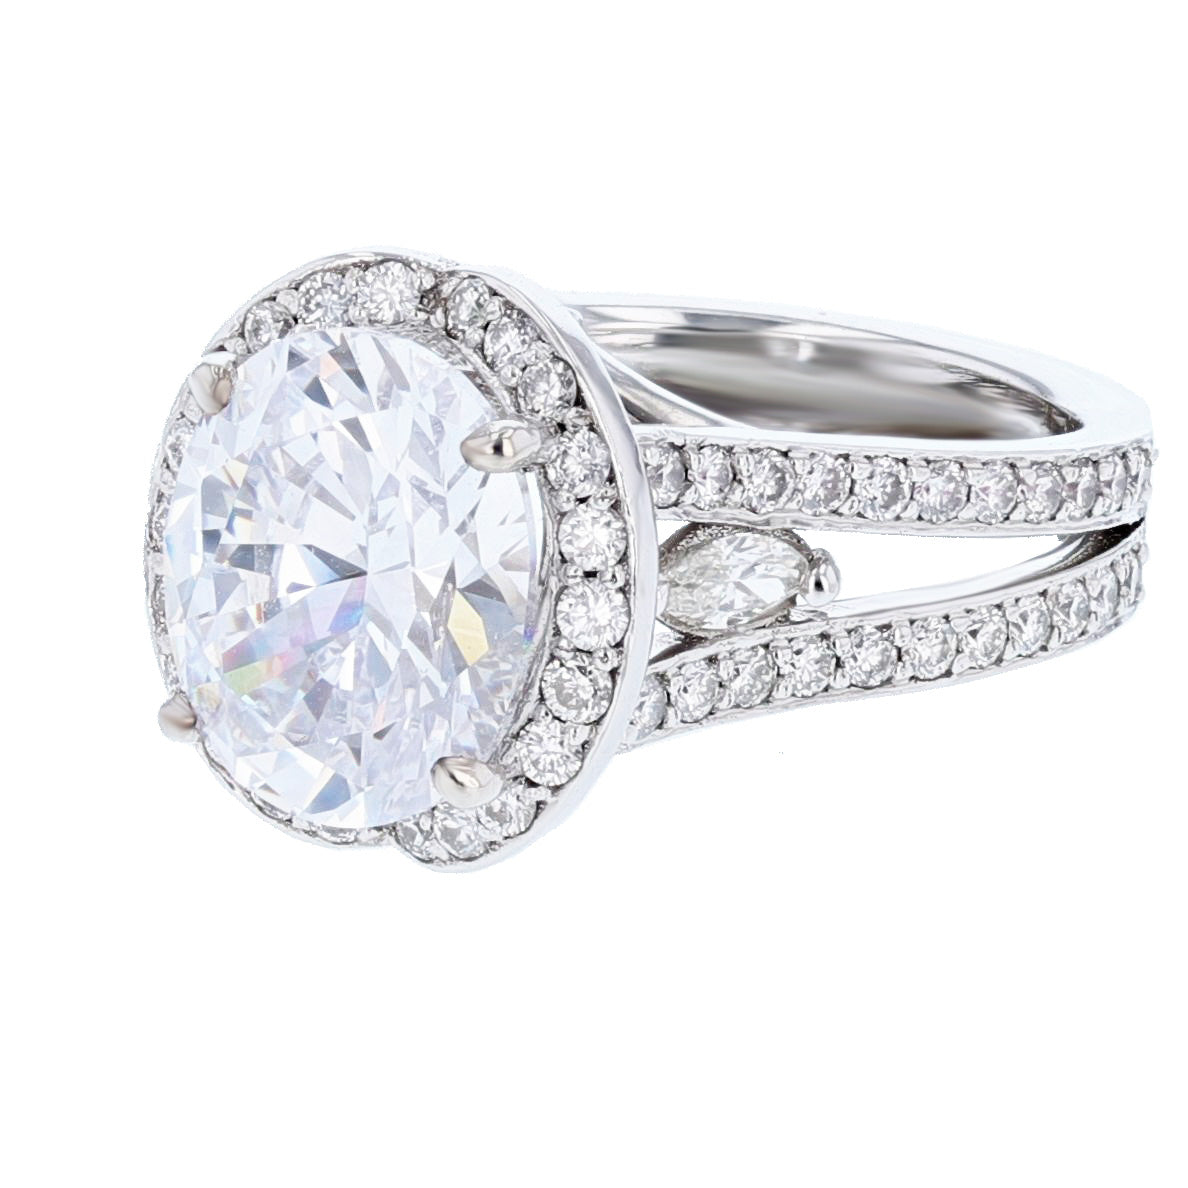 14K White Gold Oval Diamond Engagement Ring - Nazarelle